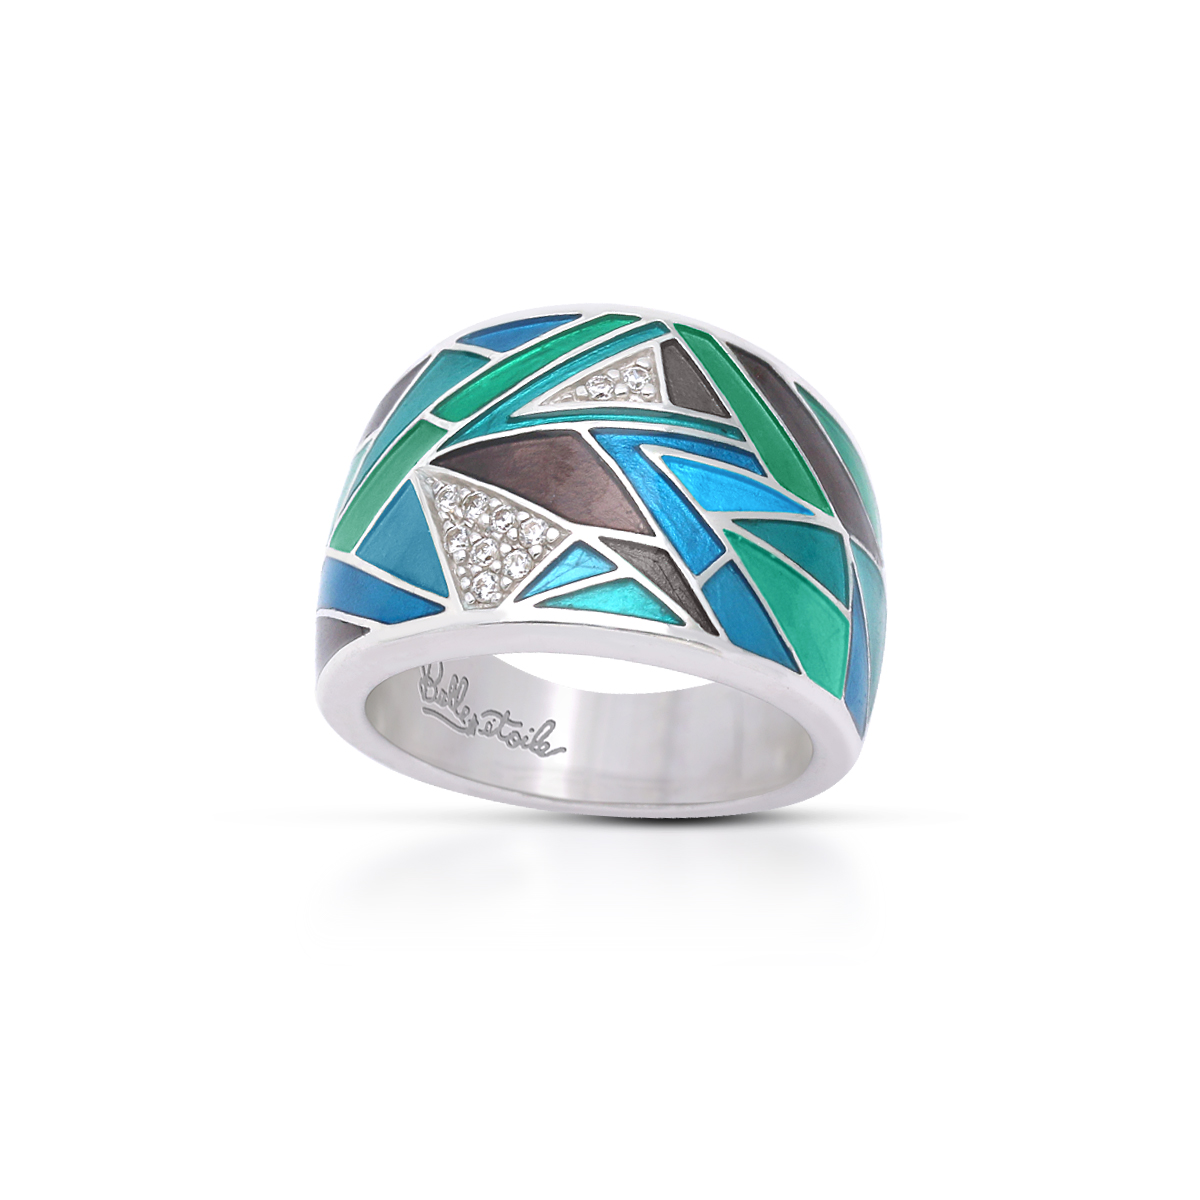 Belle Etoile - Chromatica_Blue_and_Teal_Ring_01022010201.jpg - brand name designer jewelry in Morgantown, West Virginia